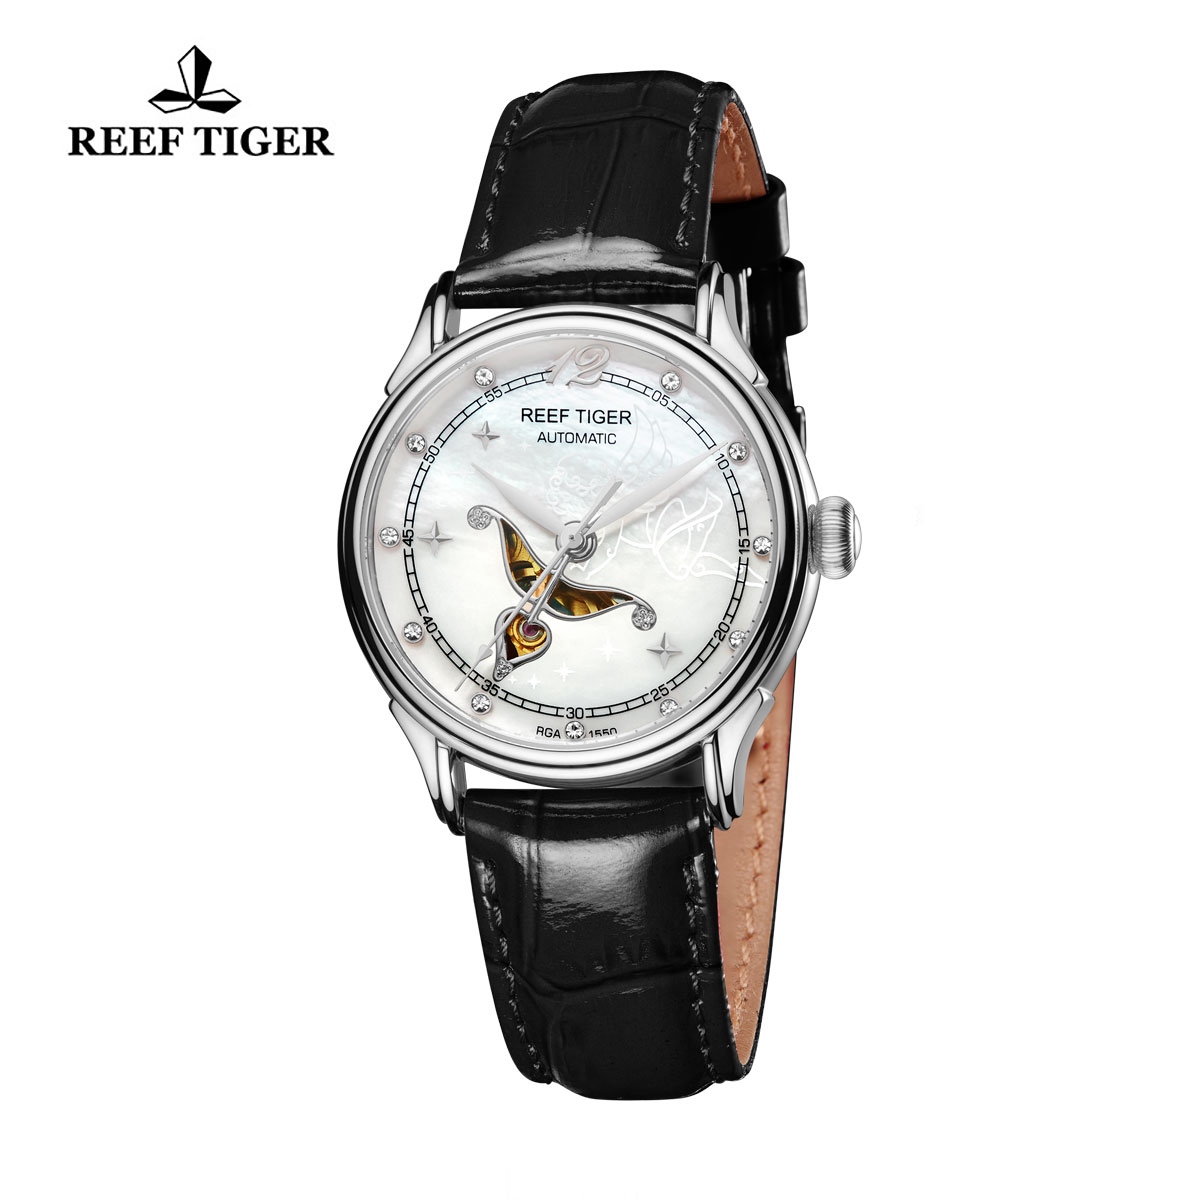 Reef Tiger Fashion Watch White MOP Dial Automatic Steel Lady Watch RGA1550-YWL